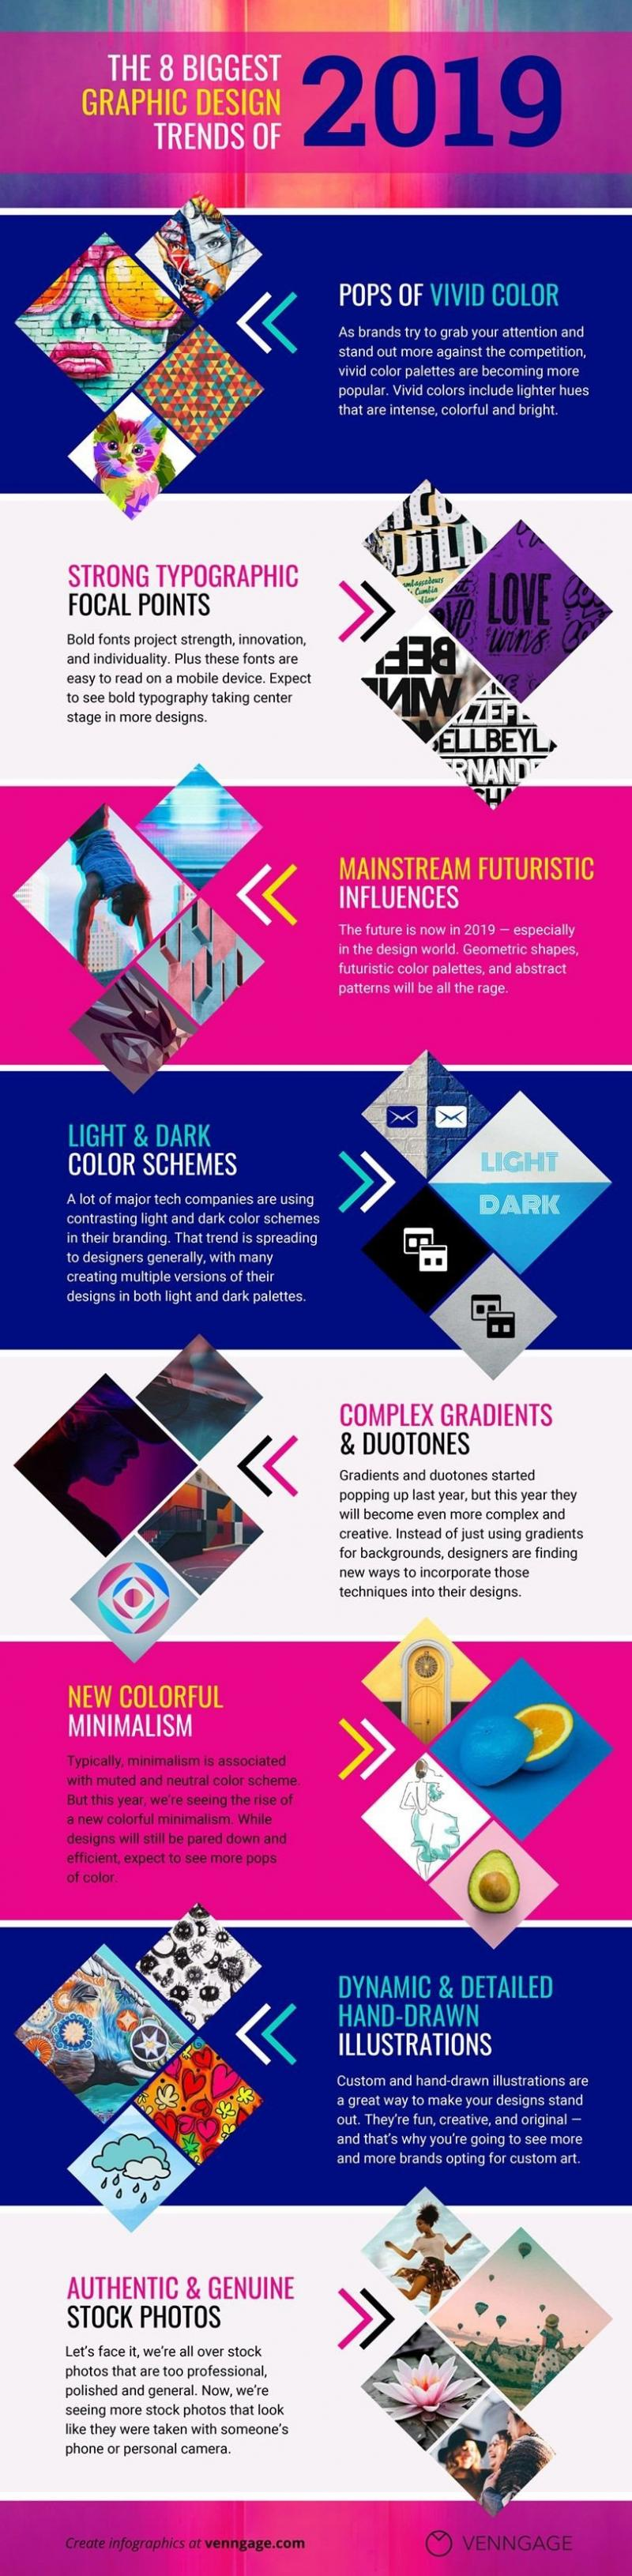 The 8 biggest graphic design trends of 2019 #Infographic